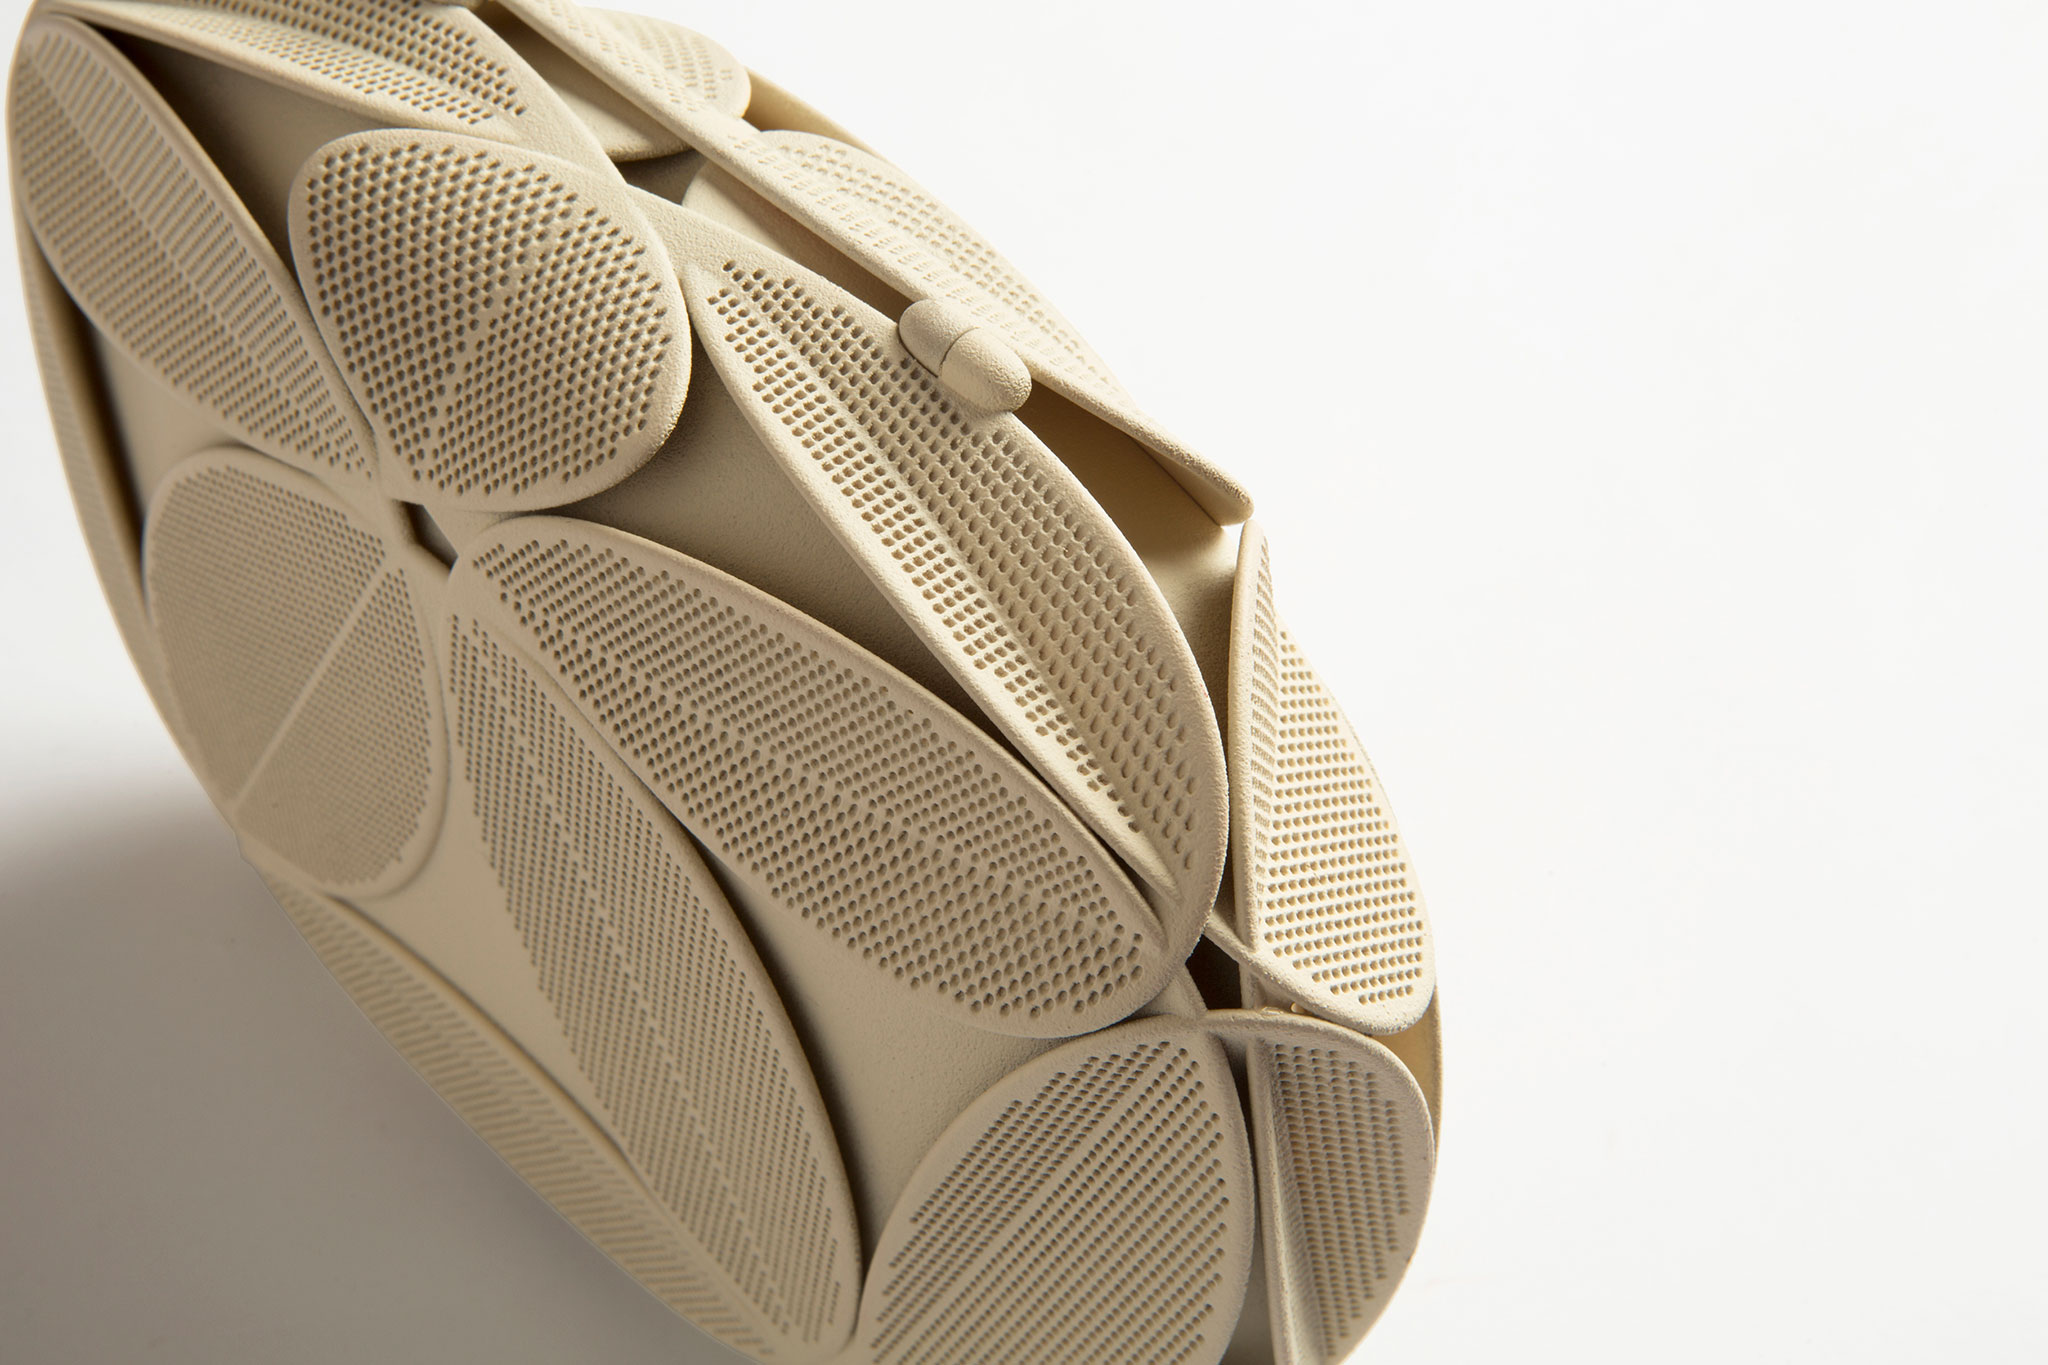 Ivy-3D-Printed-Clutch-Maison-203-06